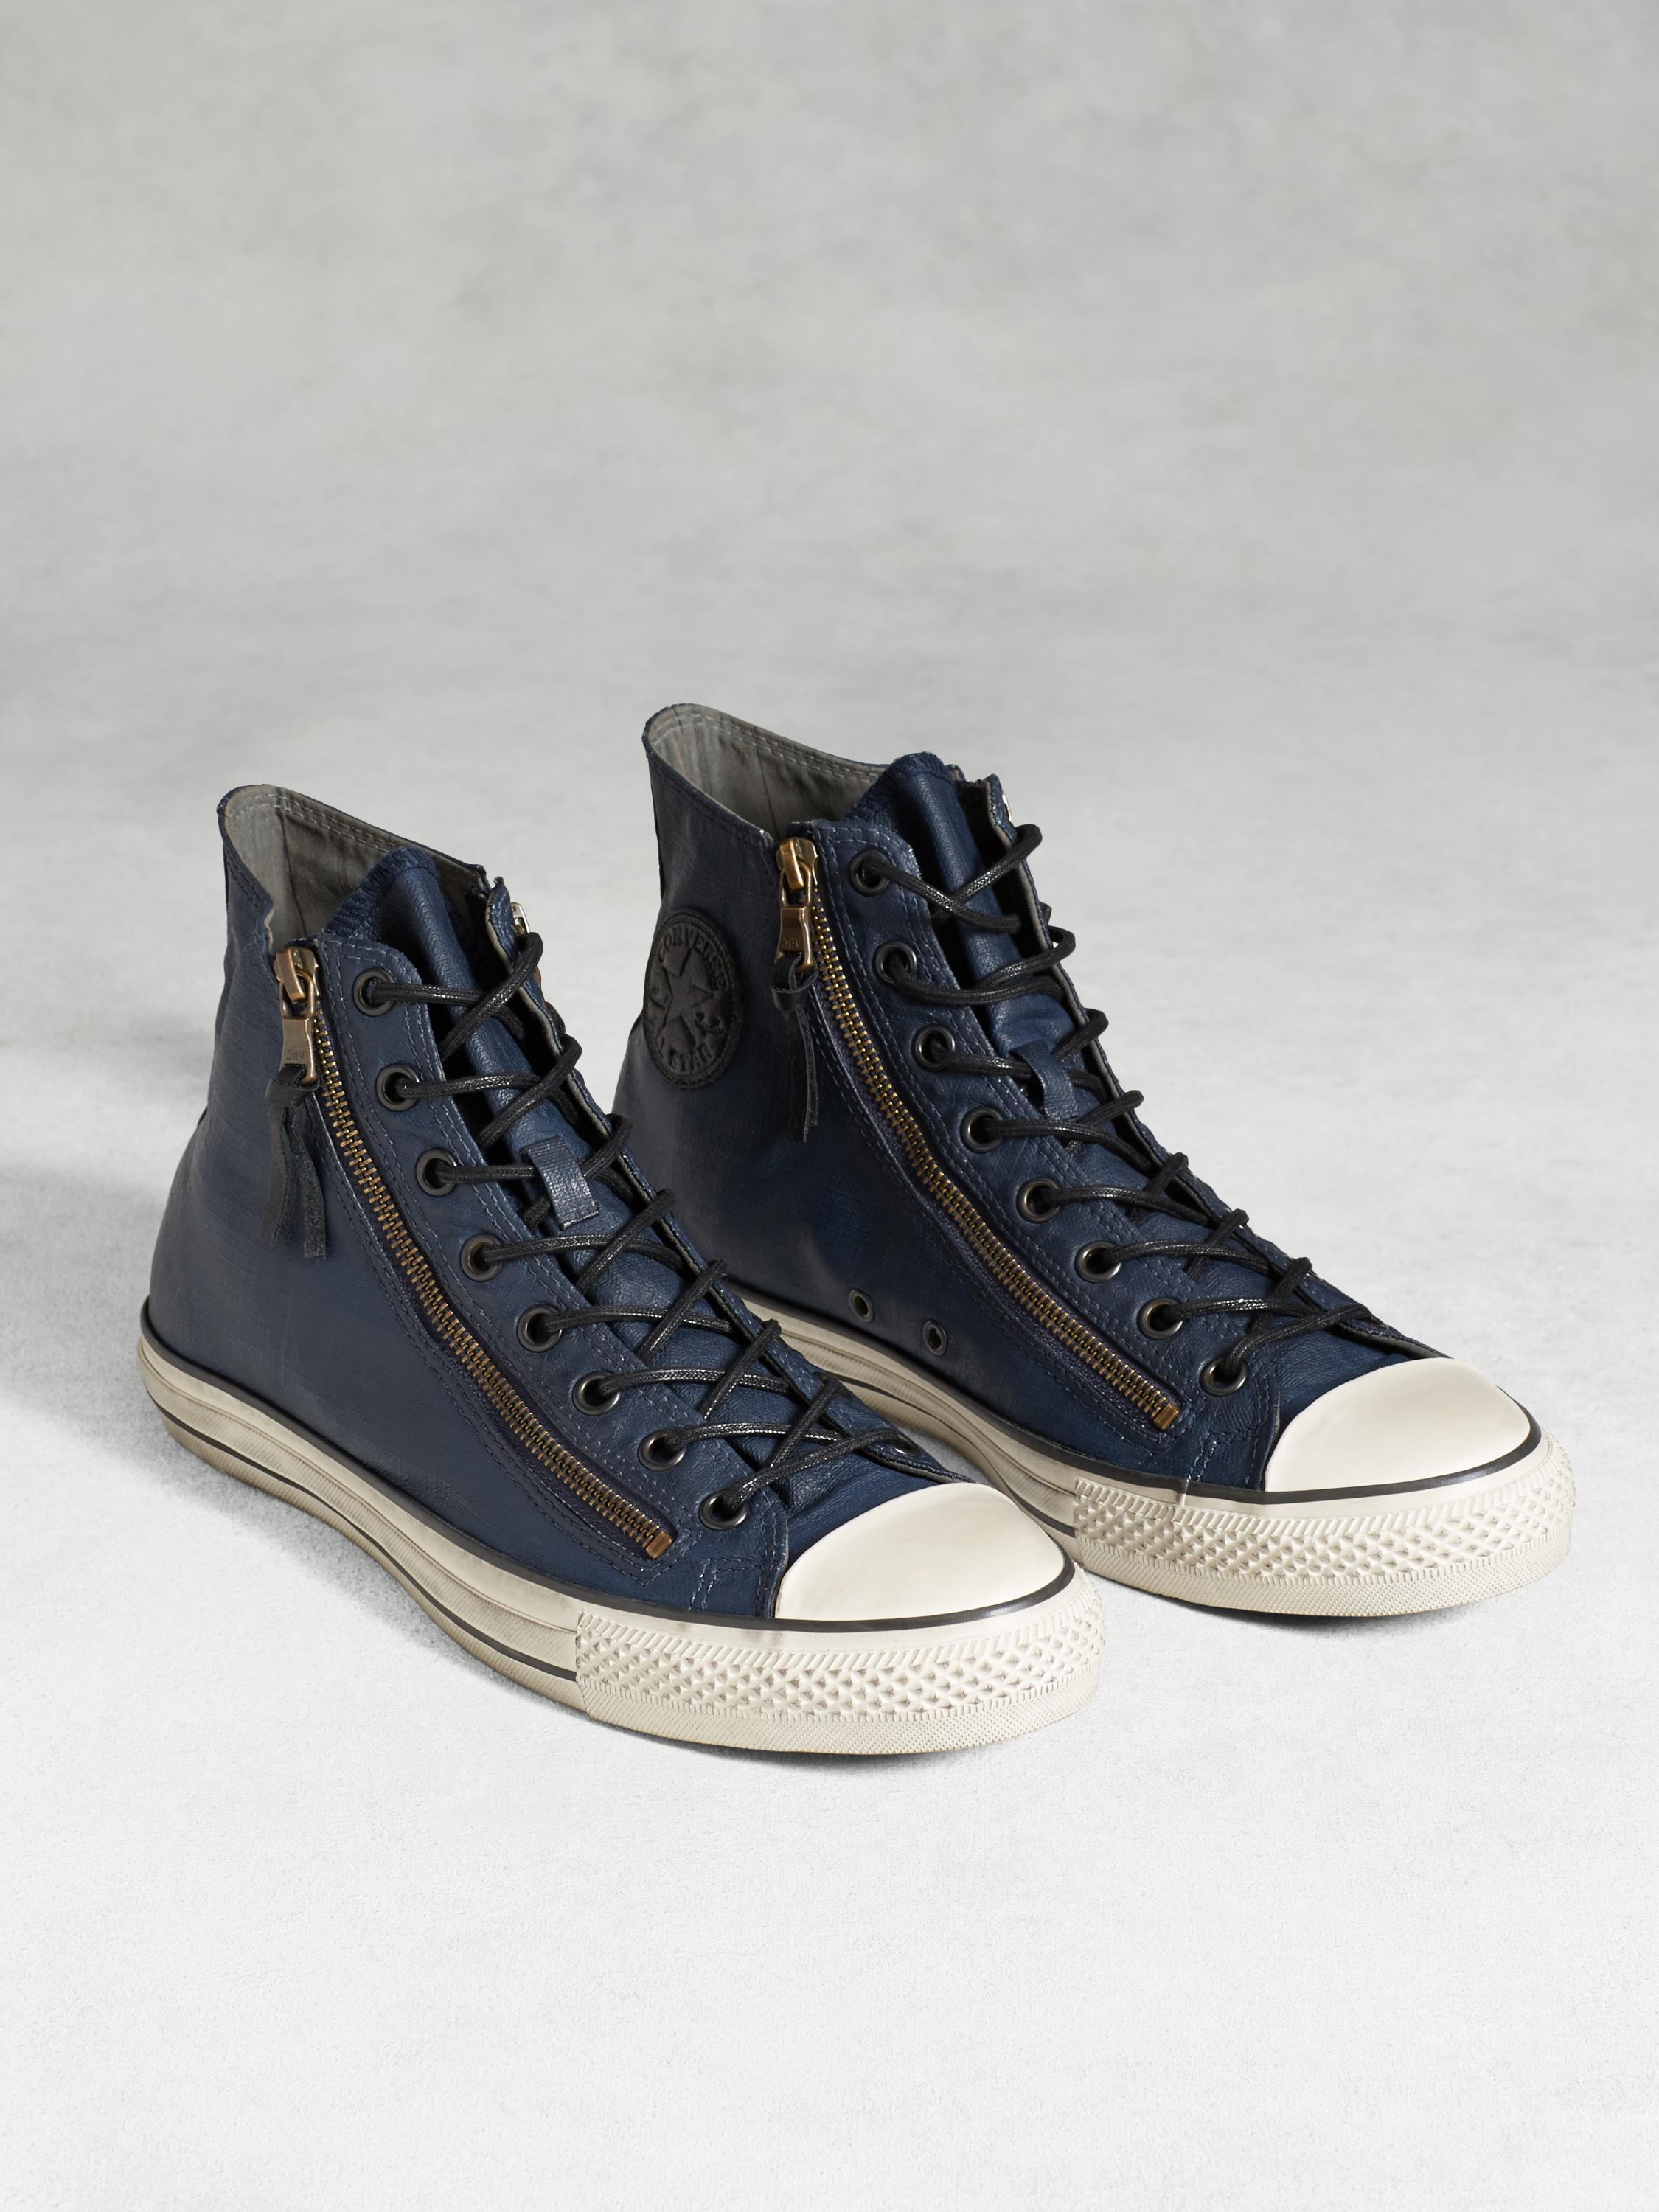 Chuck Taylor All-Star Painted Double Zip High Top